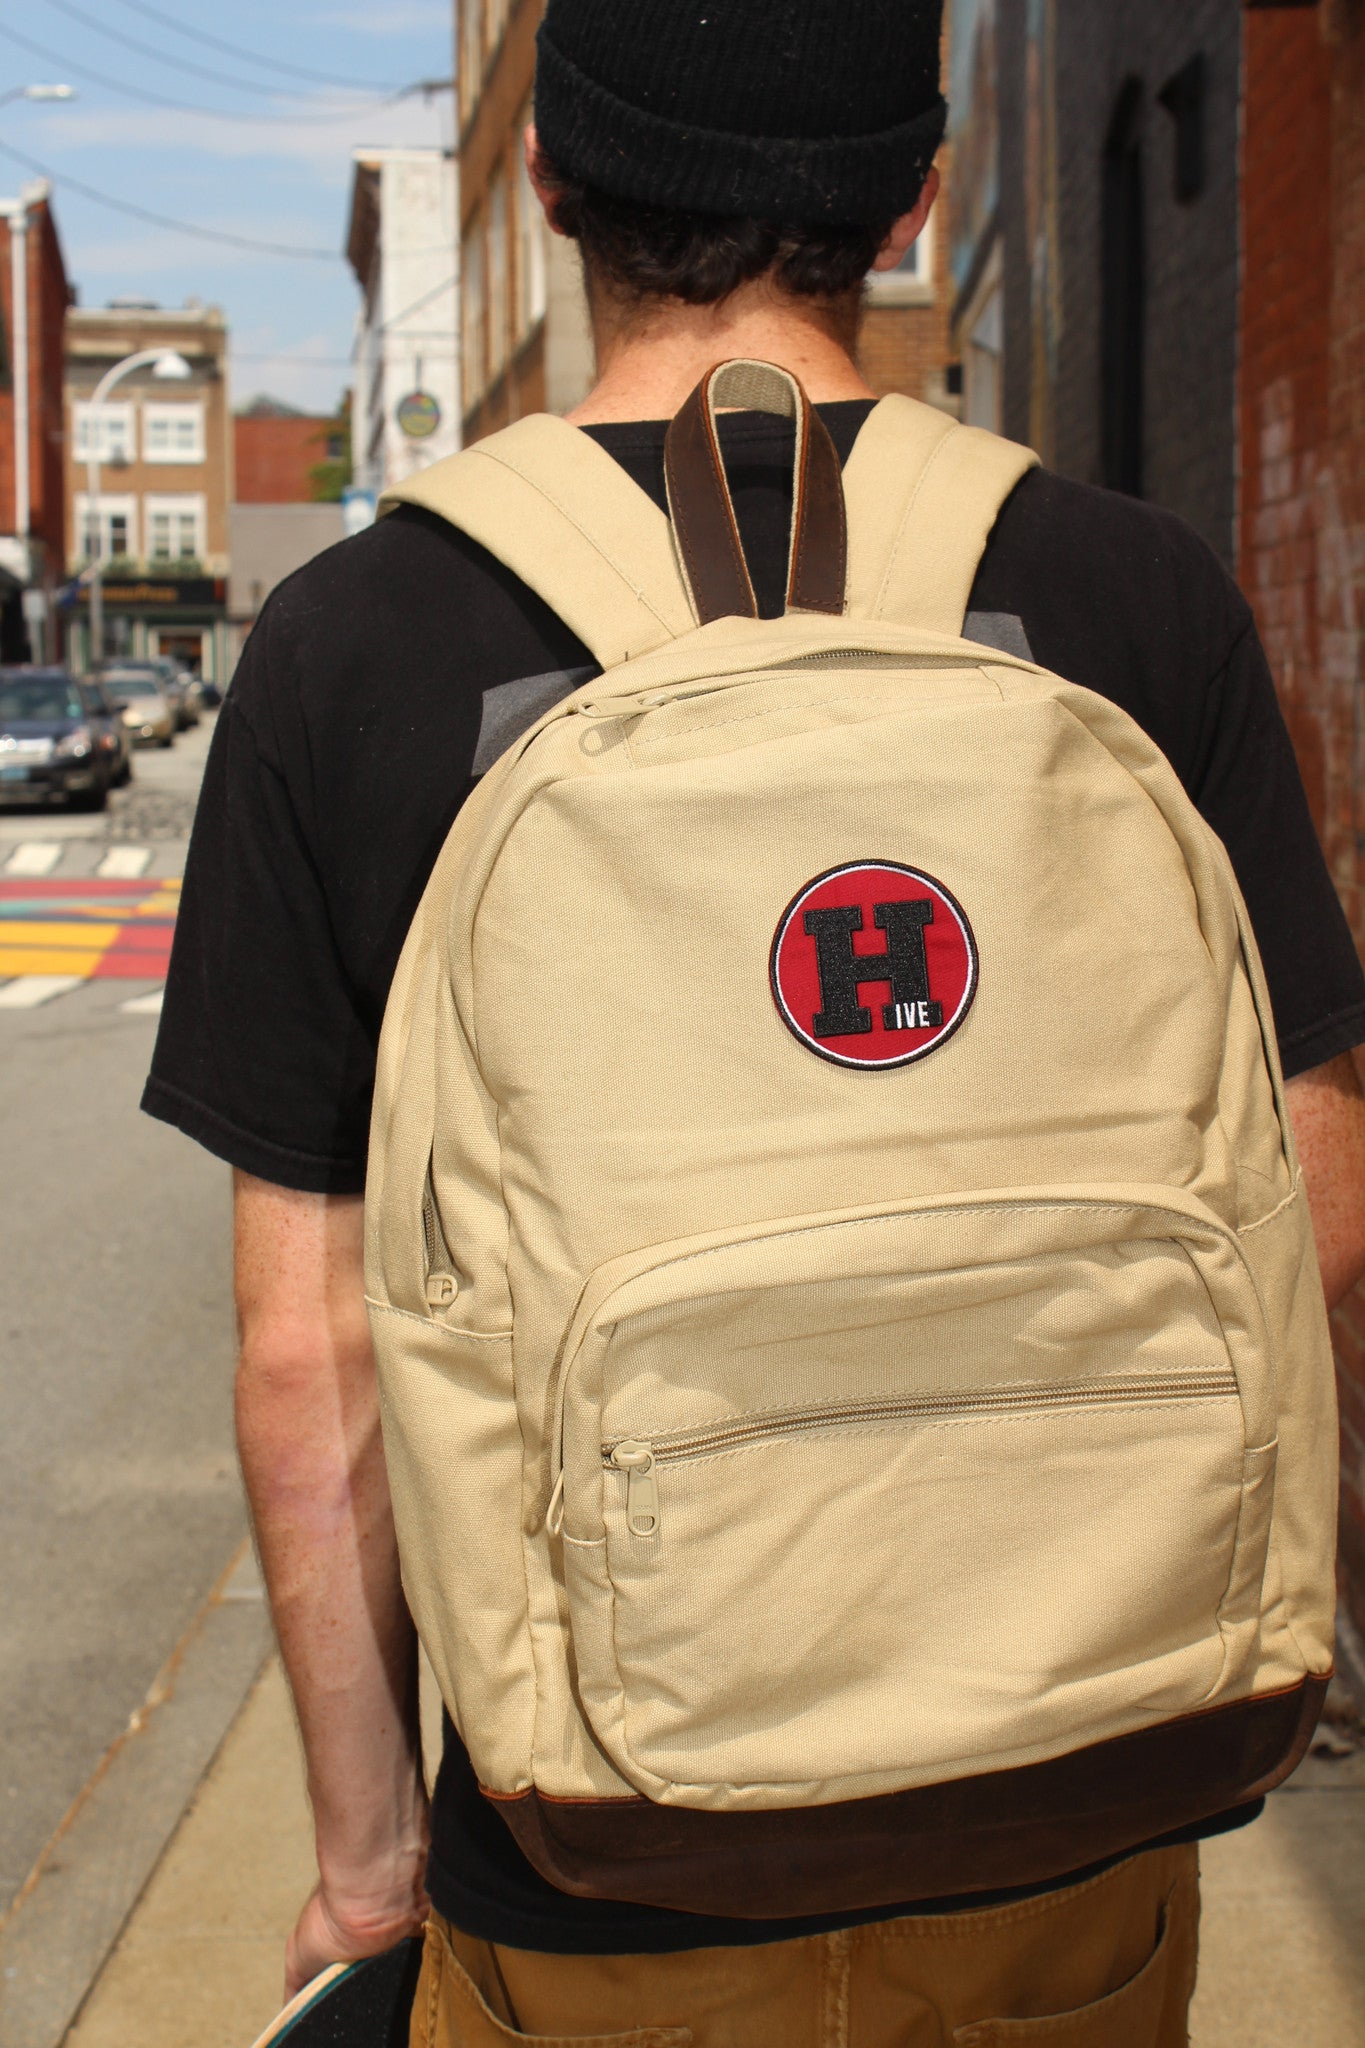 HIVE Teardrop Backpack Release